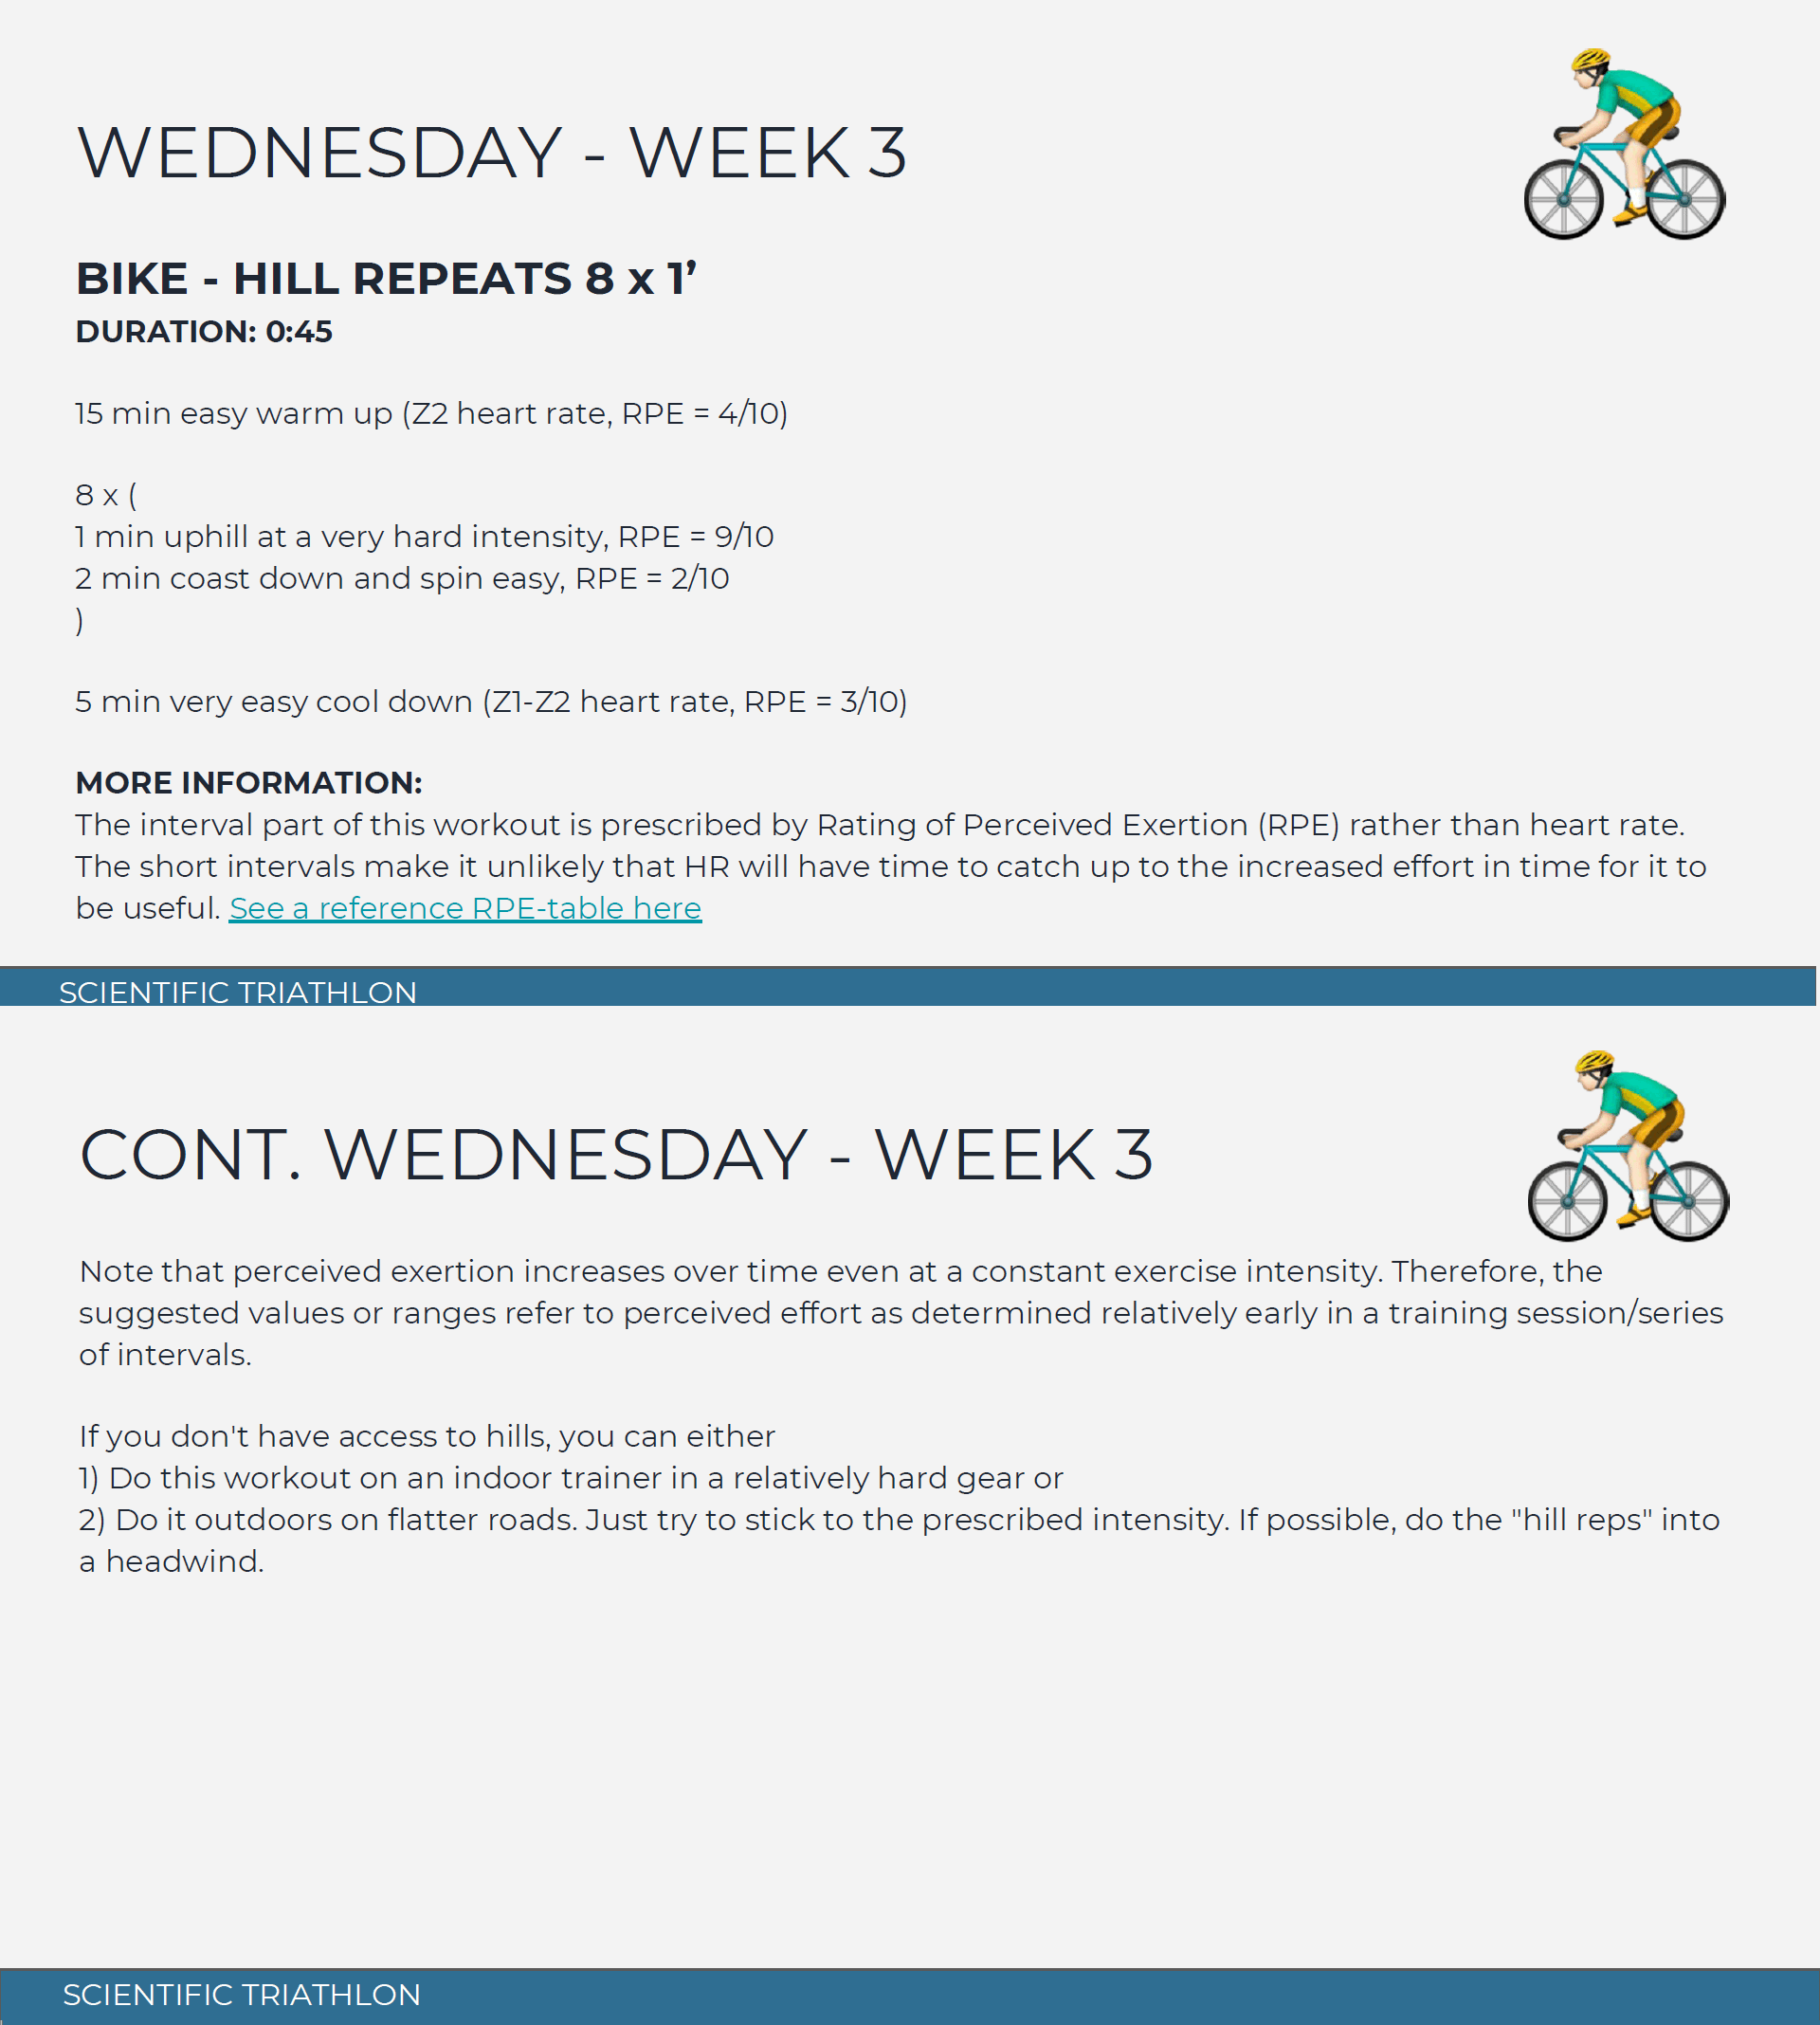 Triathlon Training Plan example - Bike Hill repeats